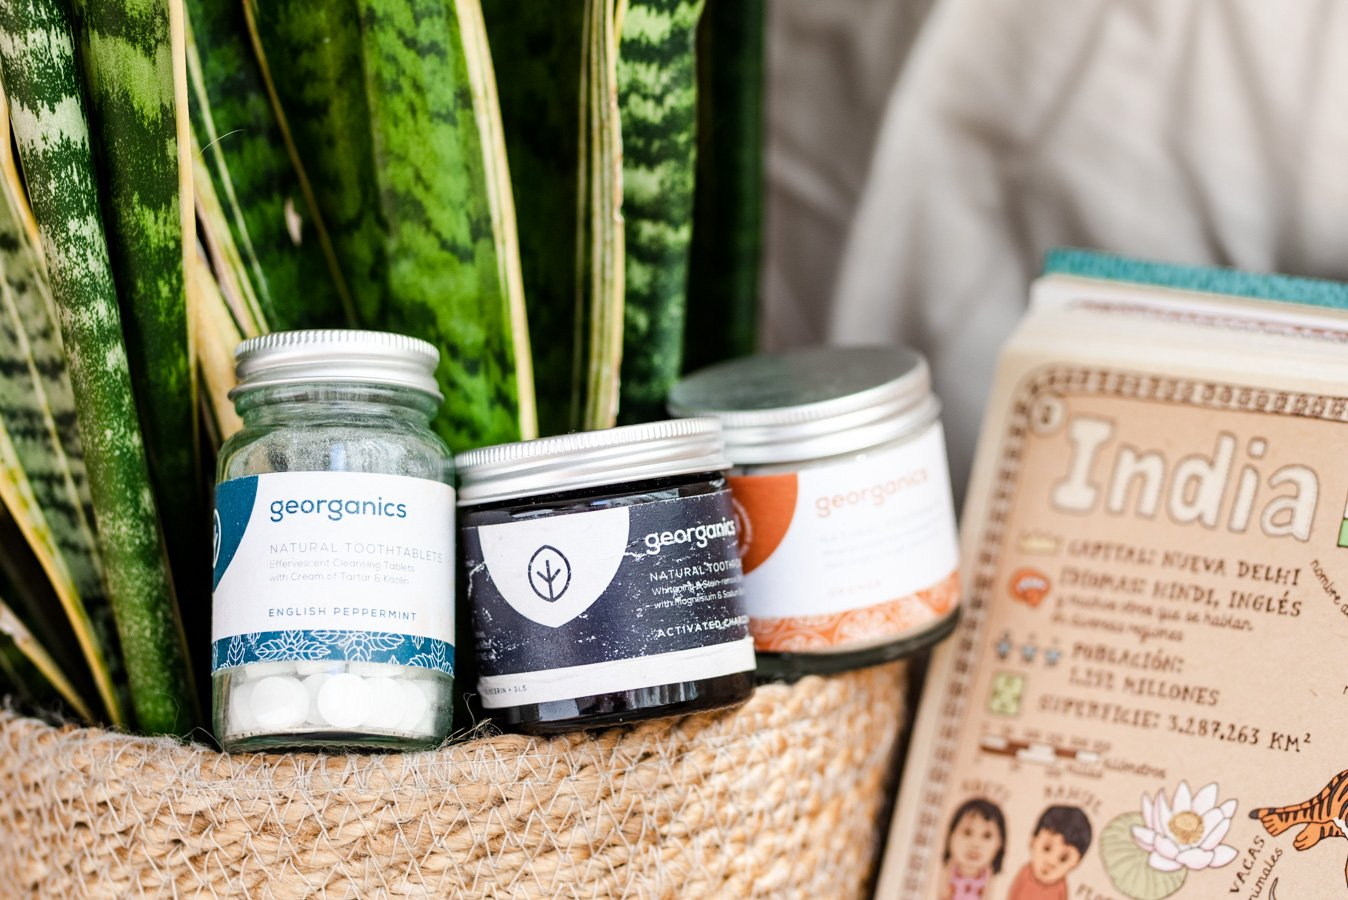 8 of the easiest ethical and sustainable travel toiletries